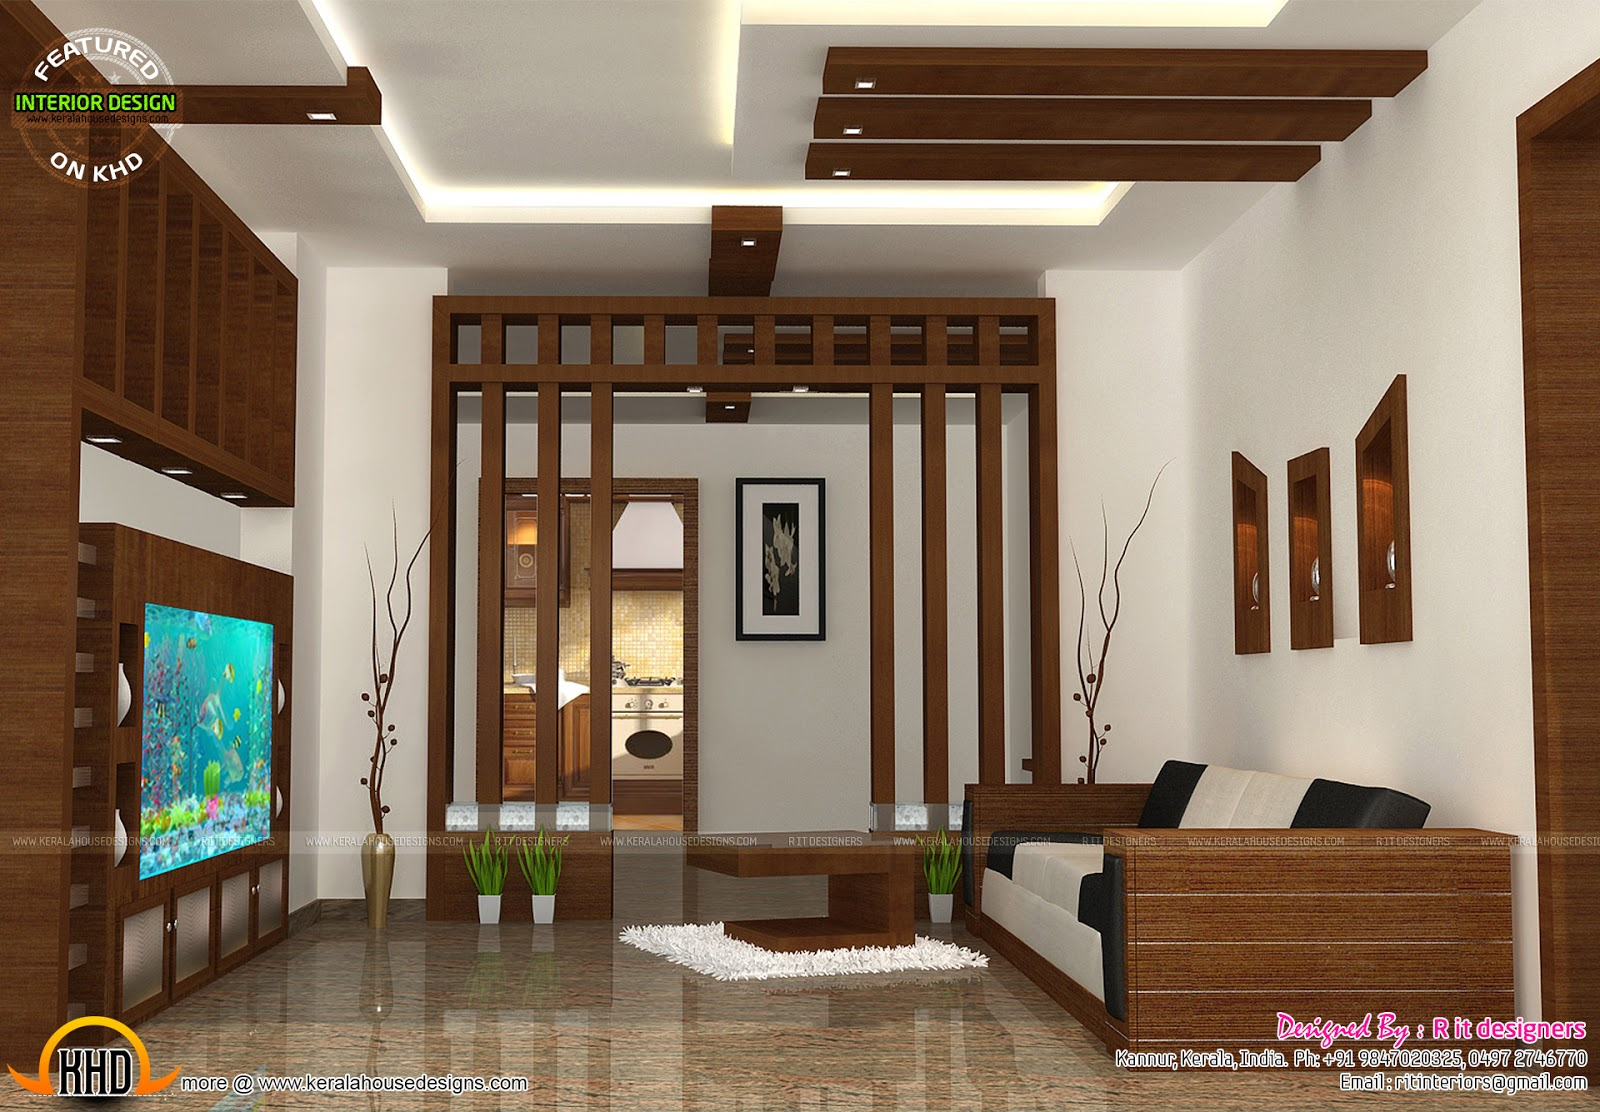 interior designs of houses in kerala wooden finish interiors kerala home design and floor plans